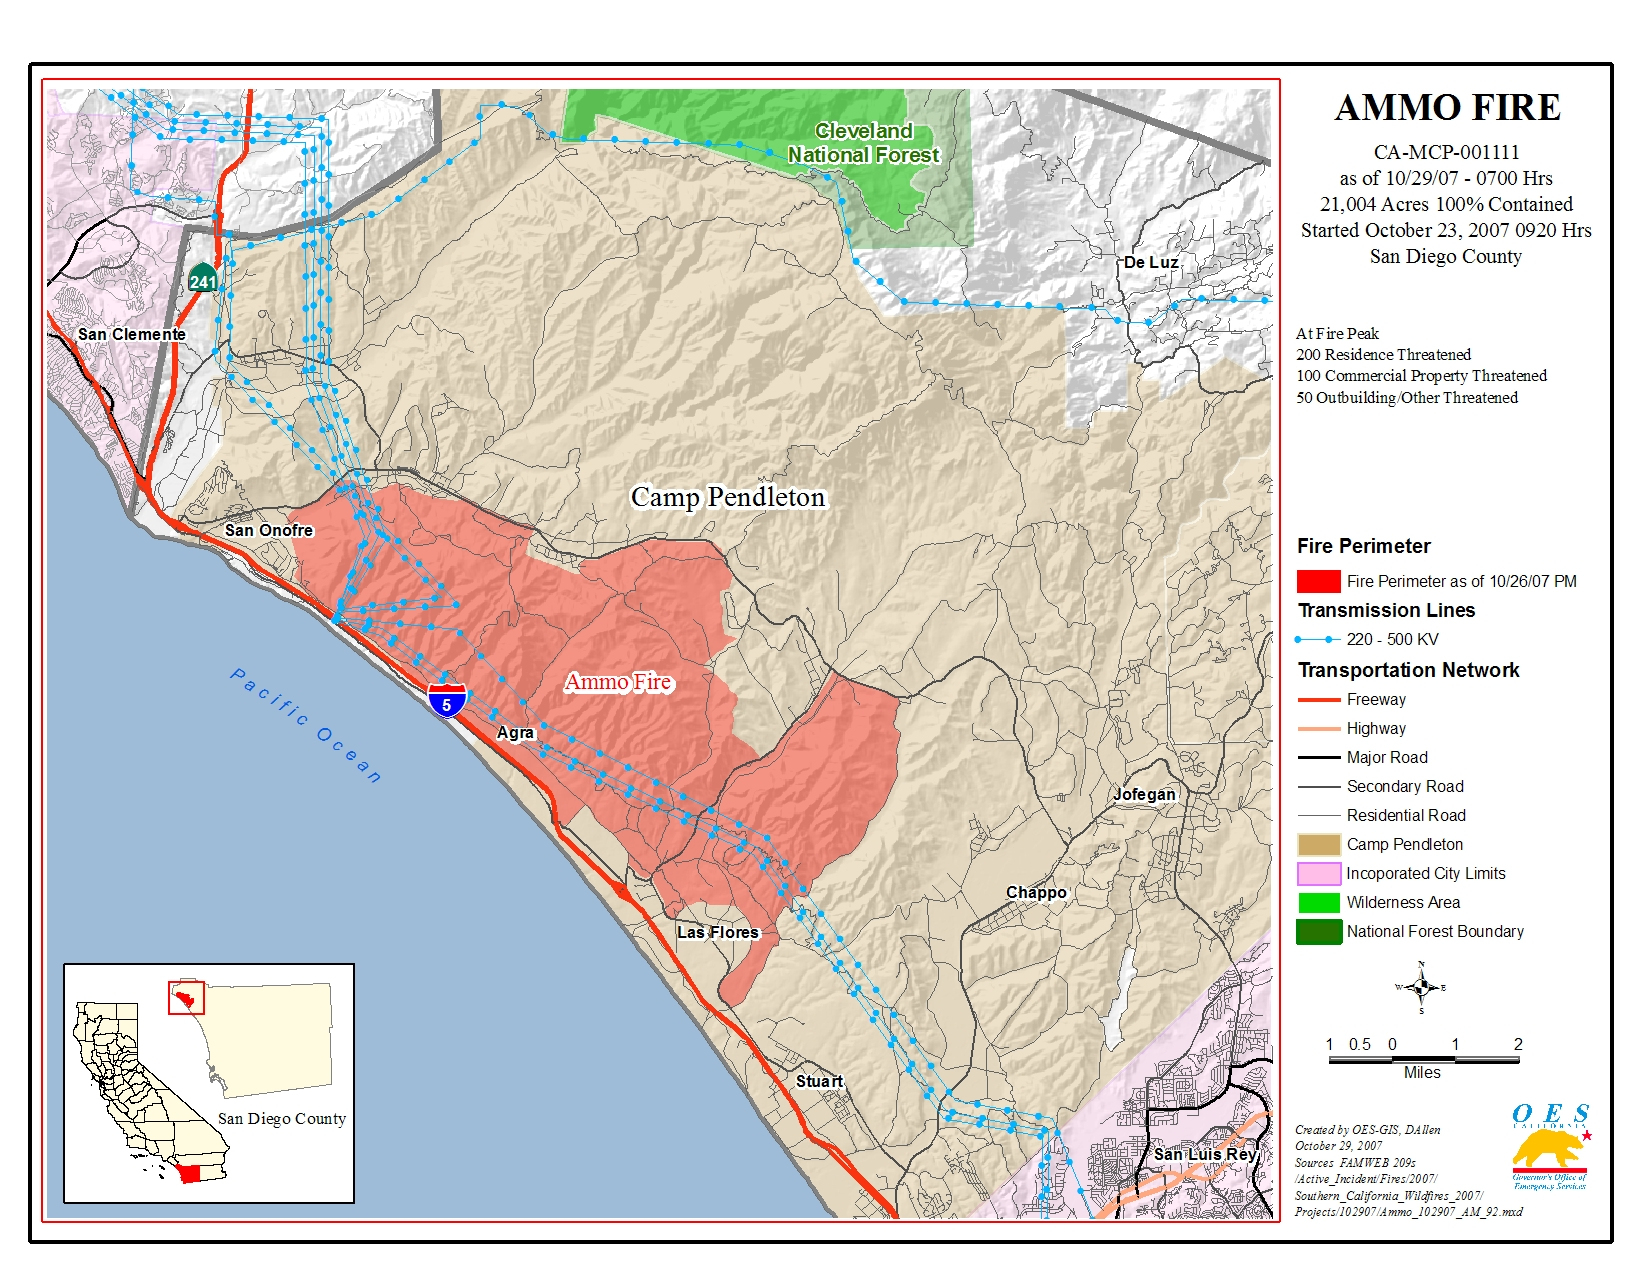 Ca Oes, Fire - Socal 2007 - Map Of Current Fires In Southern California